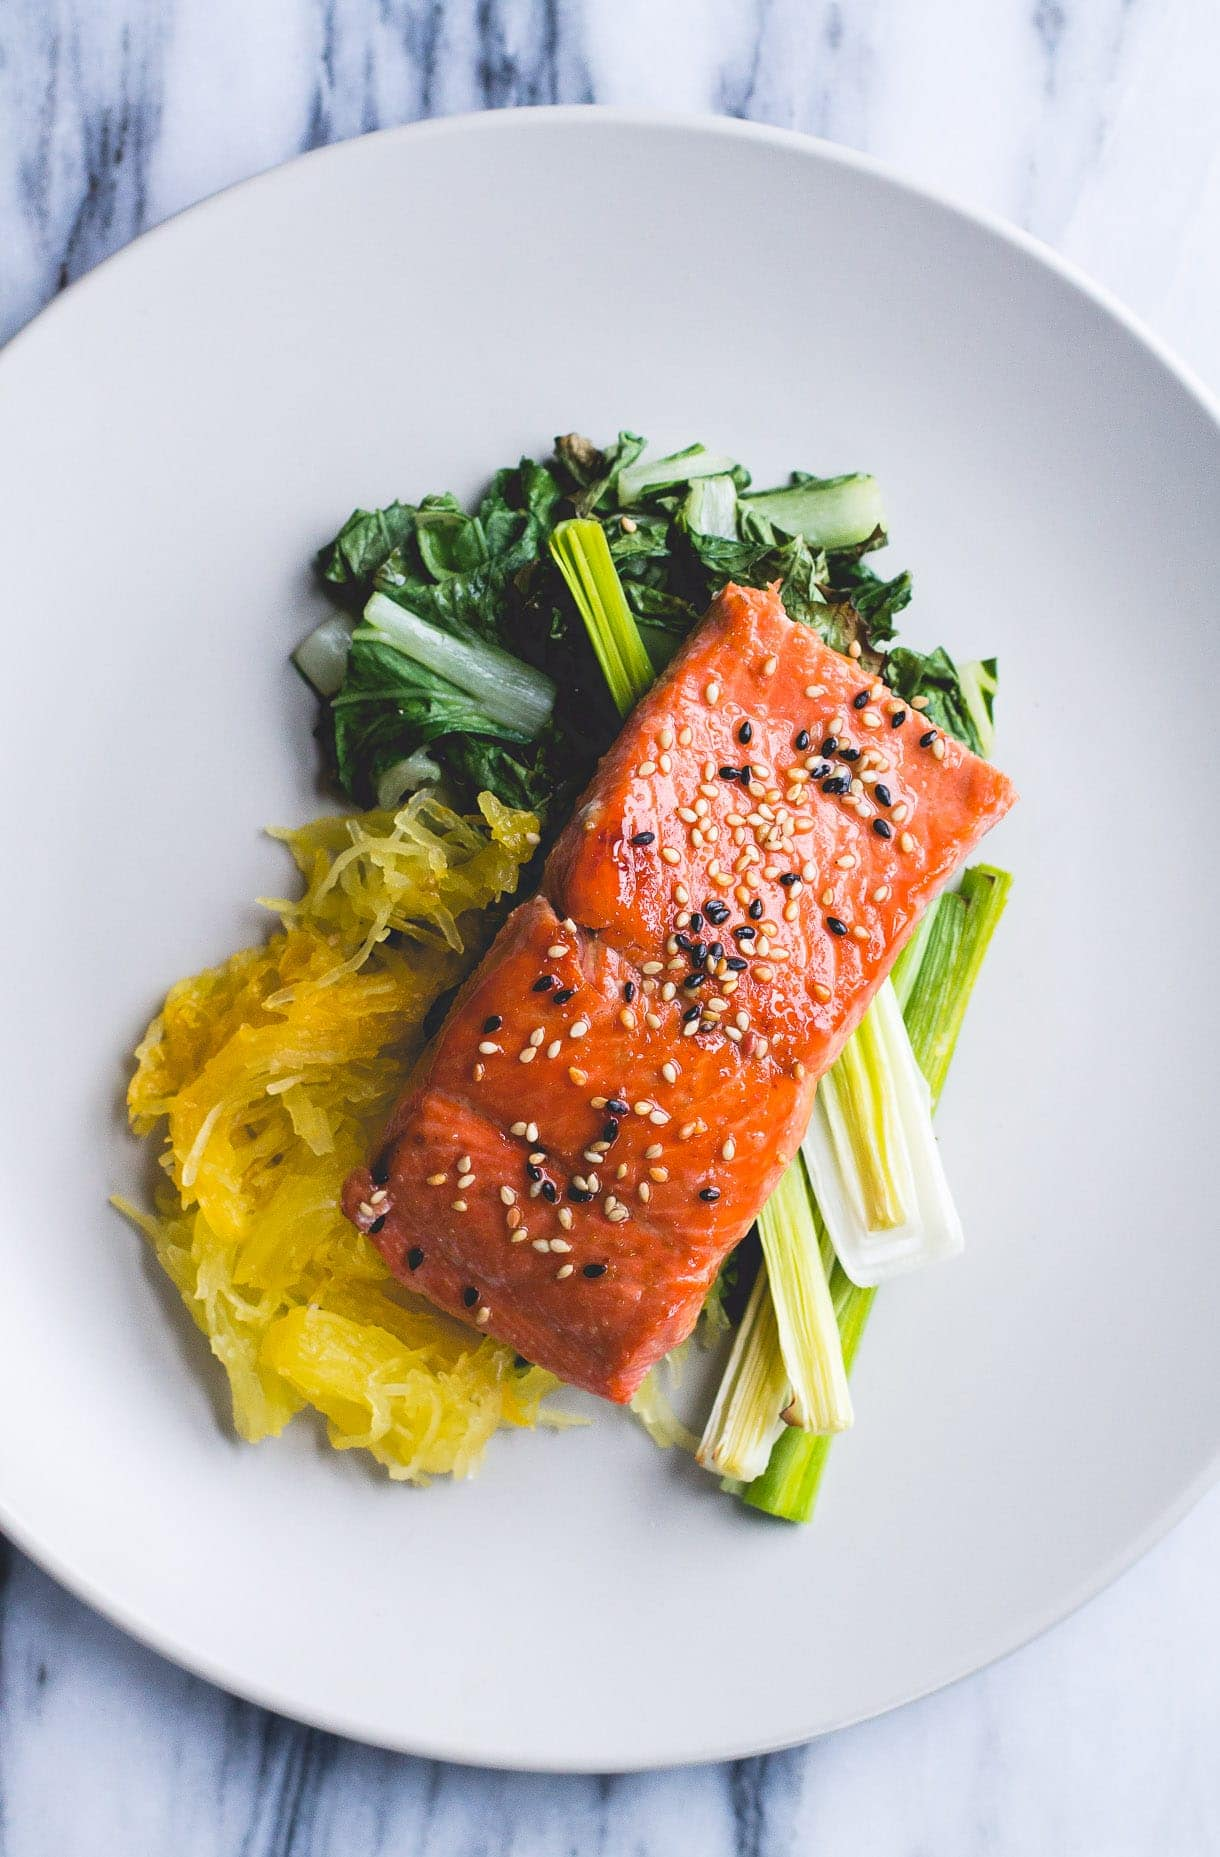 Gluten-Free Sesame Salmon with Roasted Spaghetti Squash and Leeks